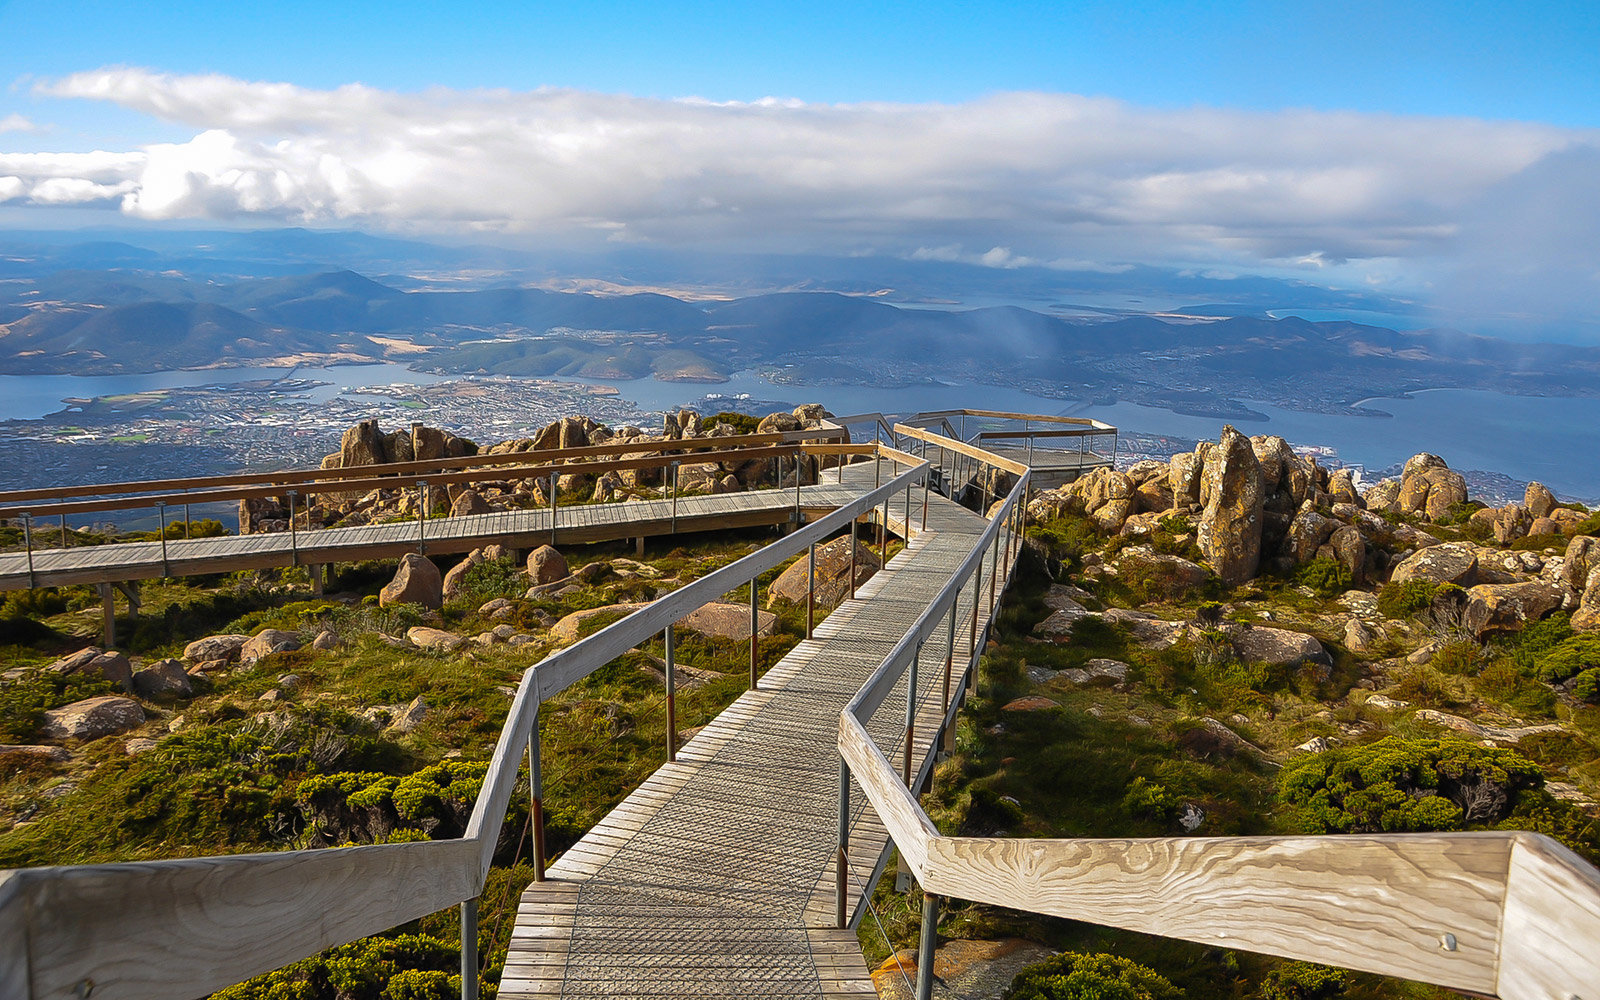 Golden Globes Lion Guide to Tasmania